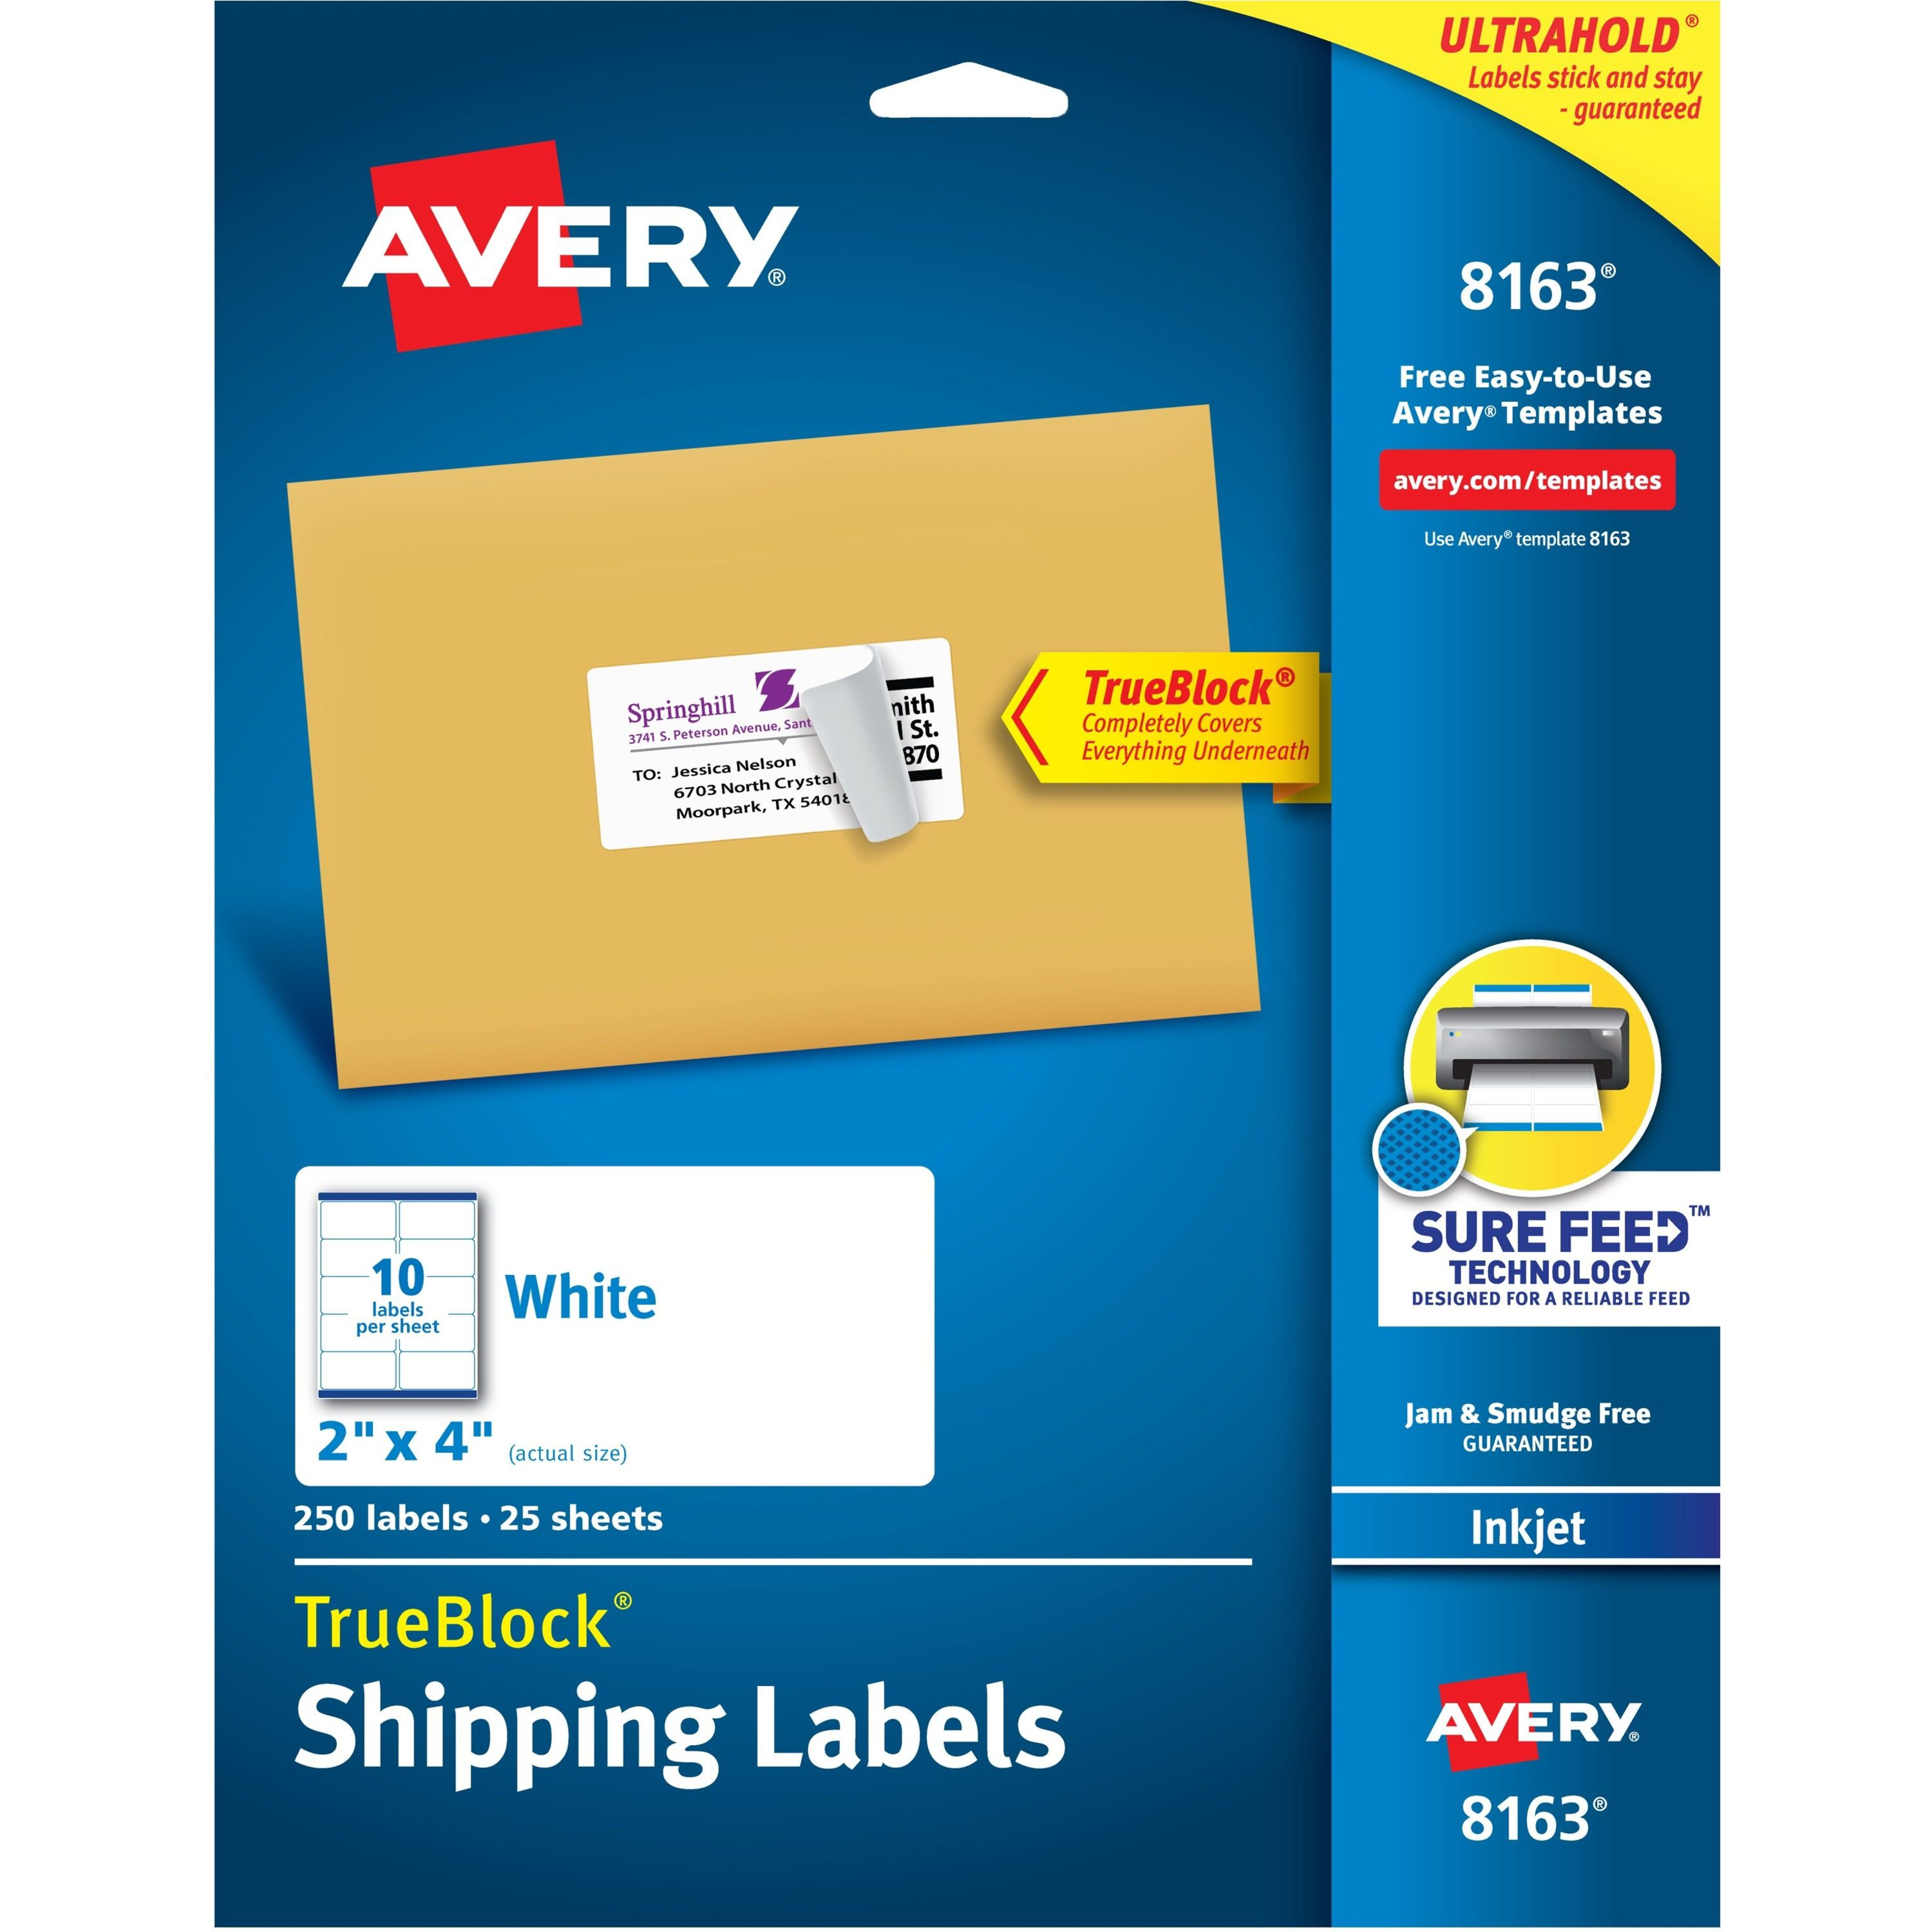 002 Marvelou Free Avery Addres Label Template For Mac High Definition  5160Full